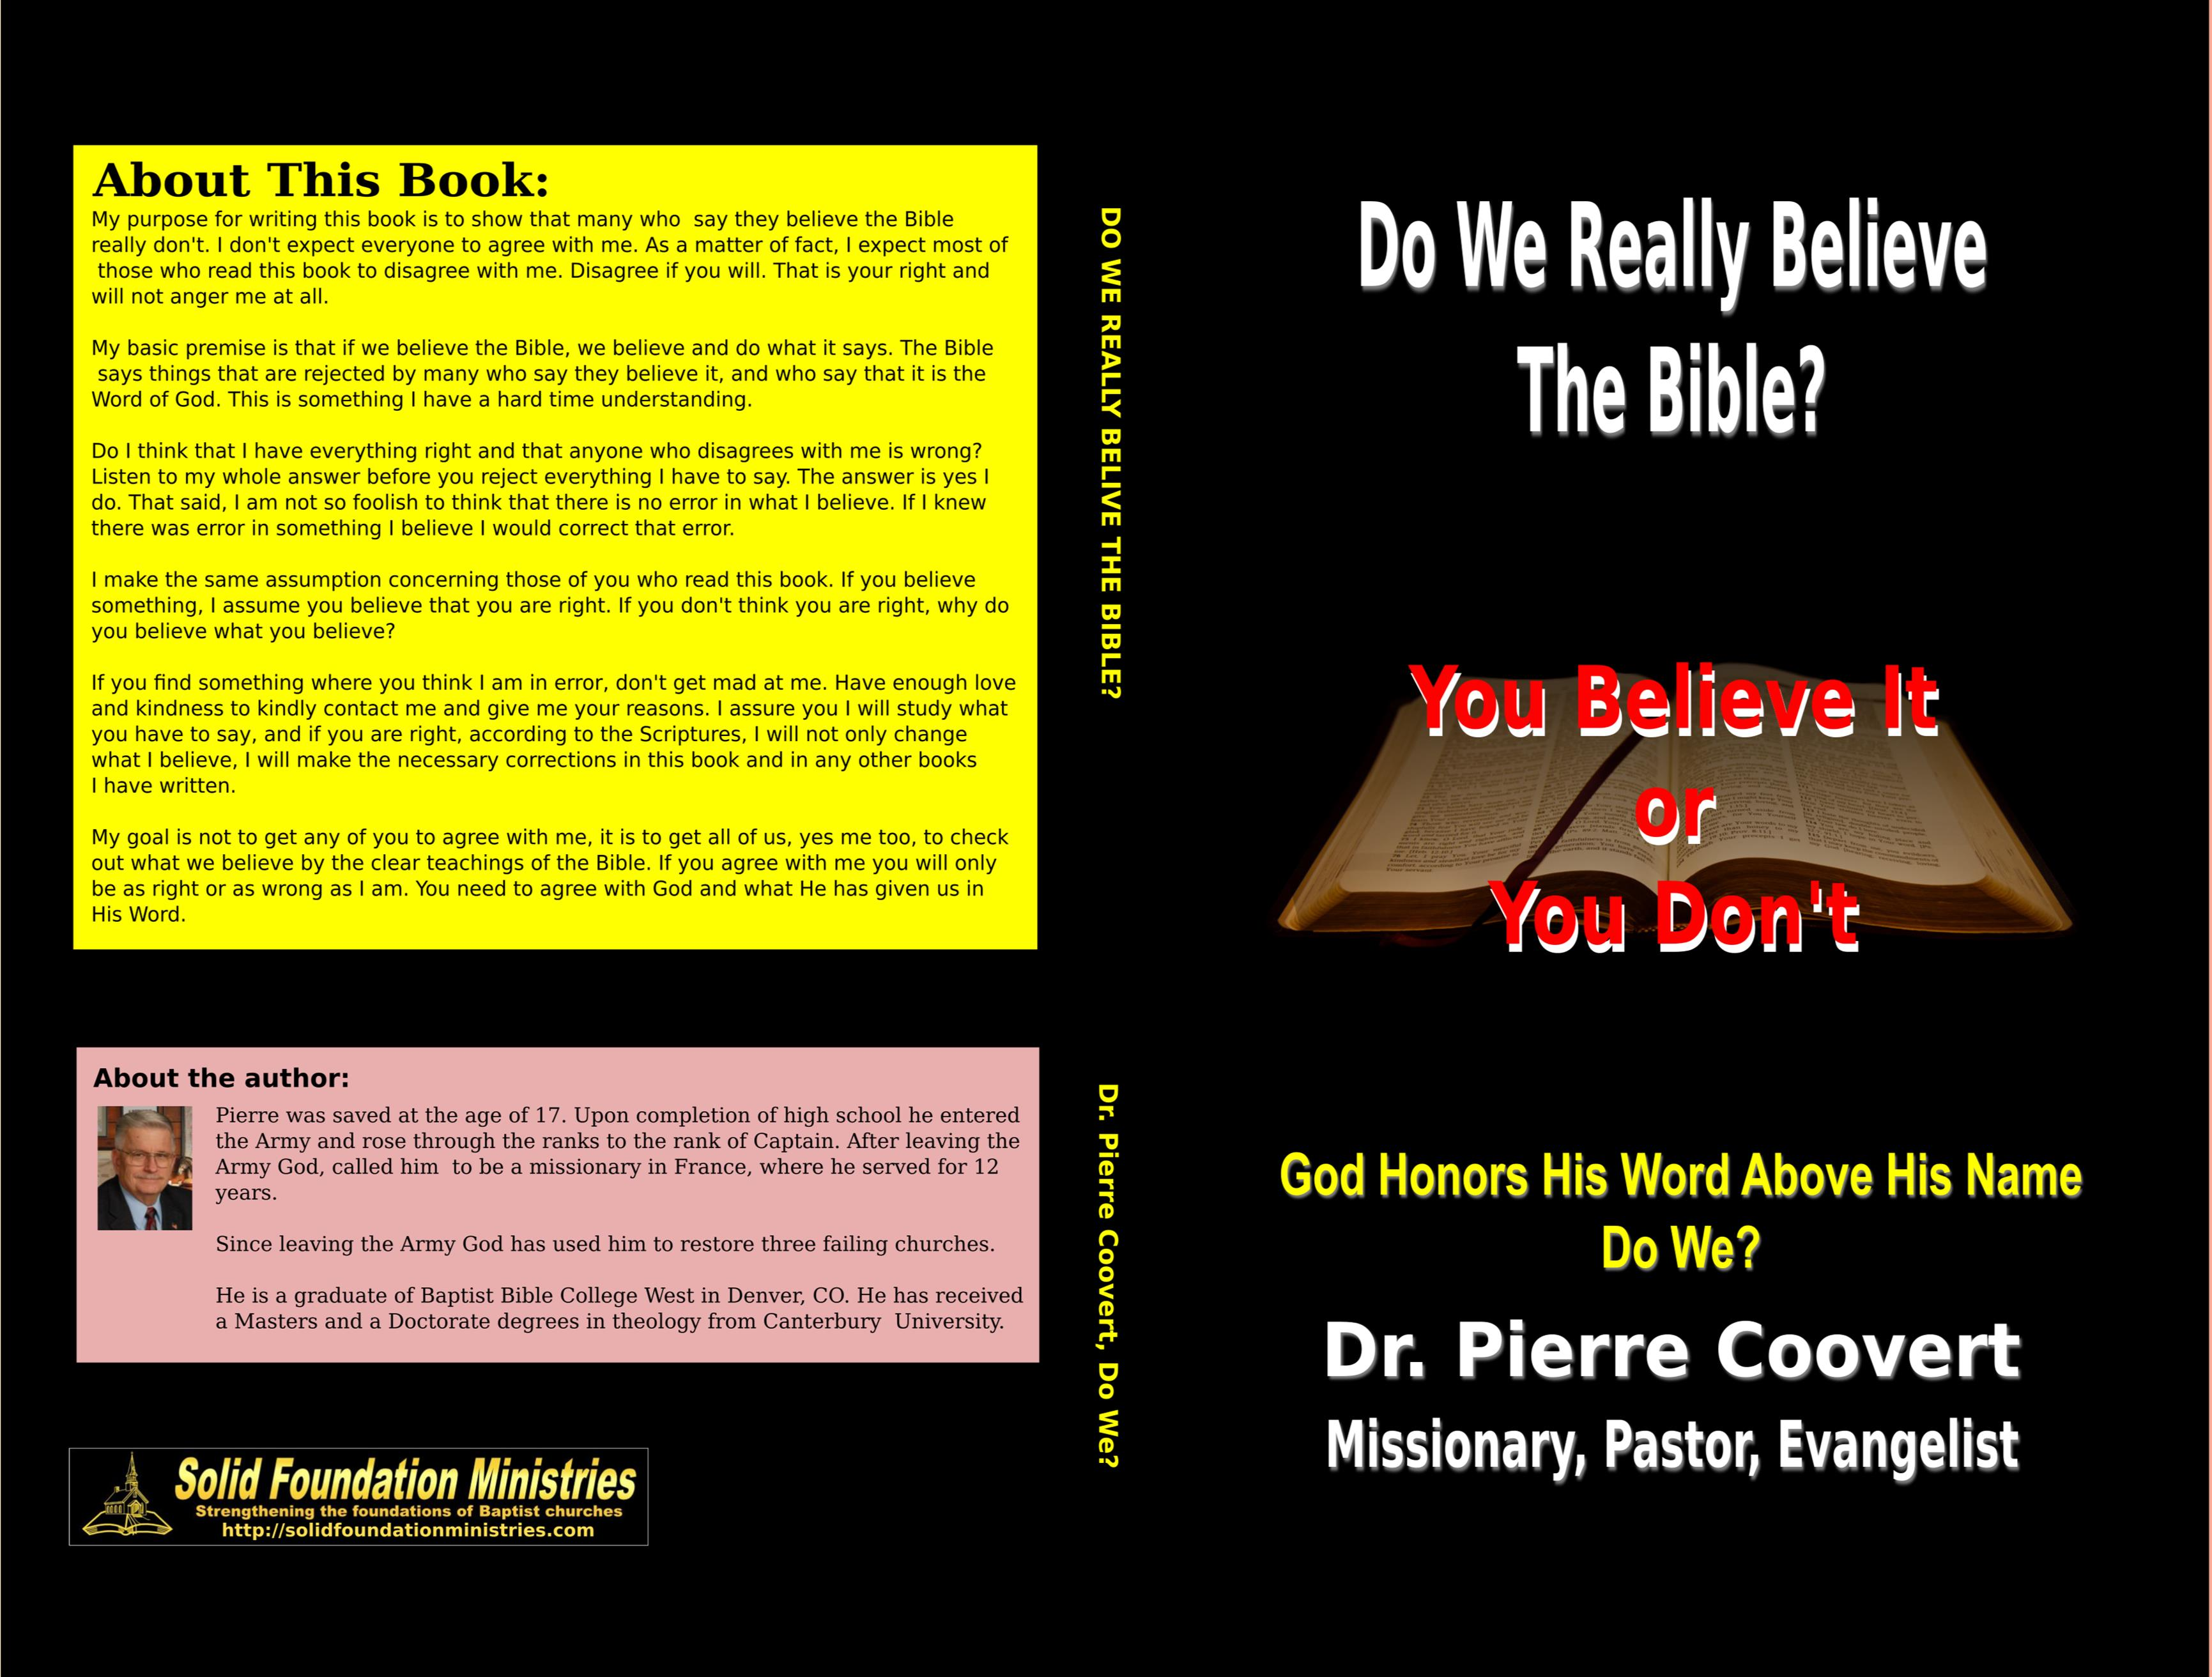 Do We Really Believe The Bible cover image